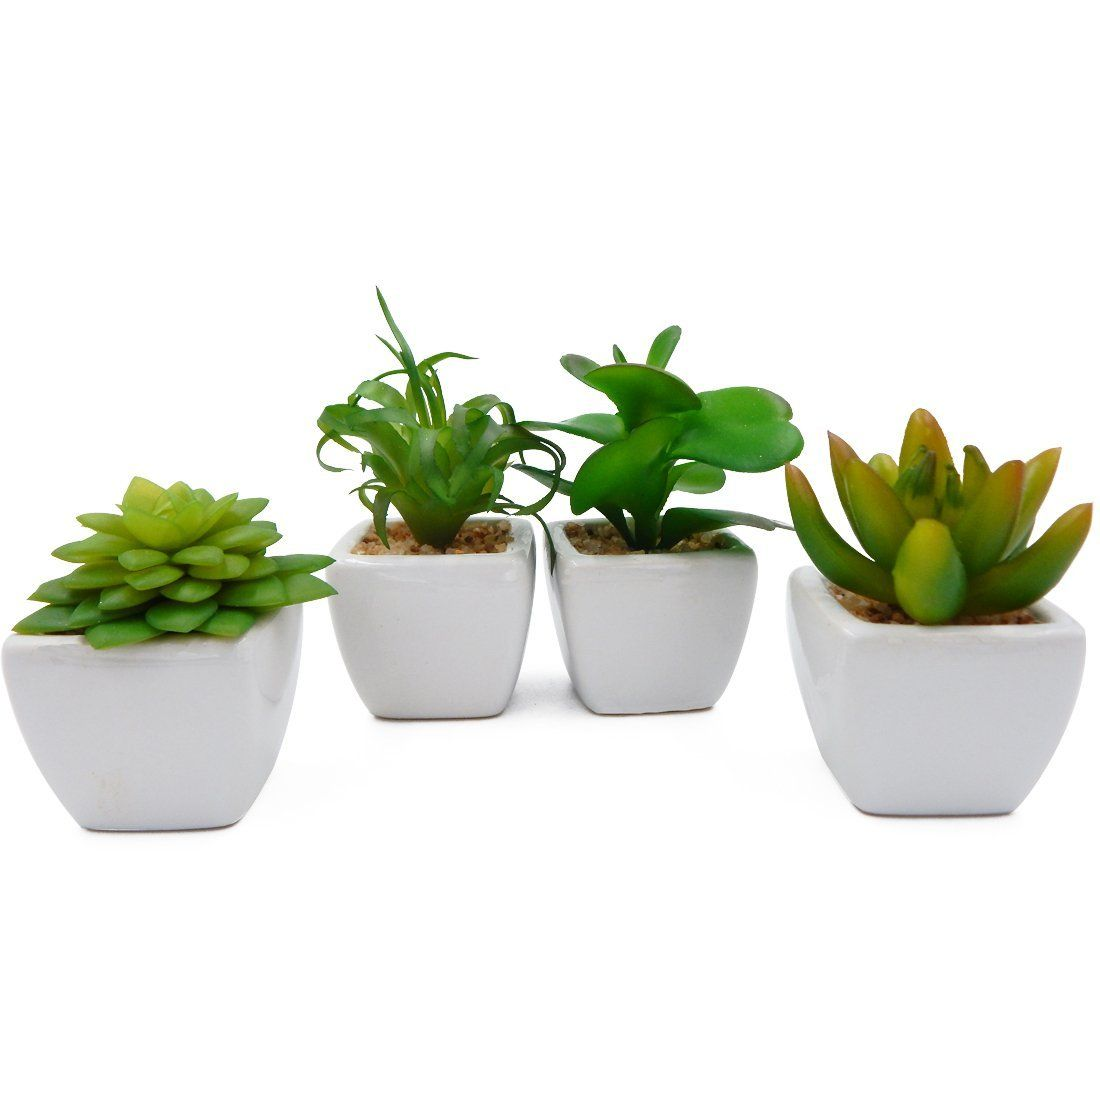 Offidix artificial succulent plants for home and office decoration